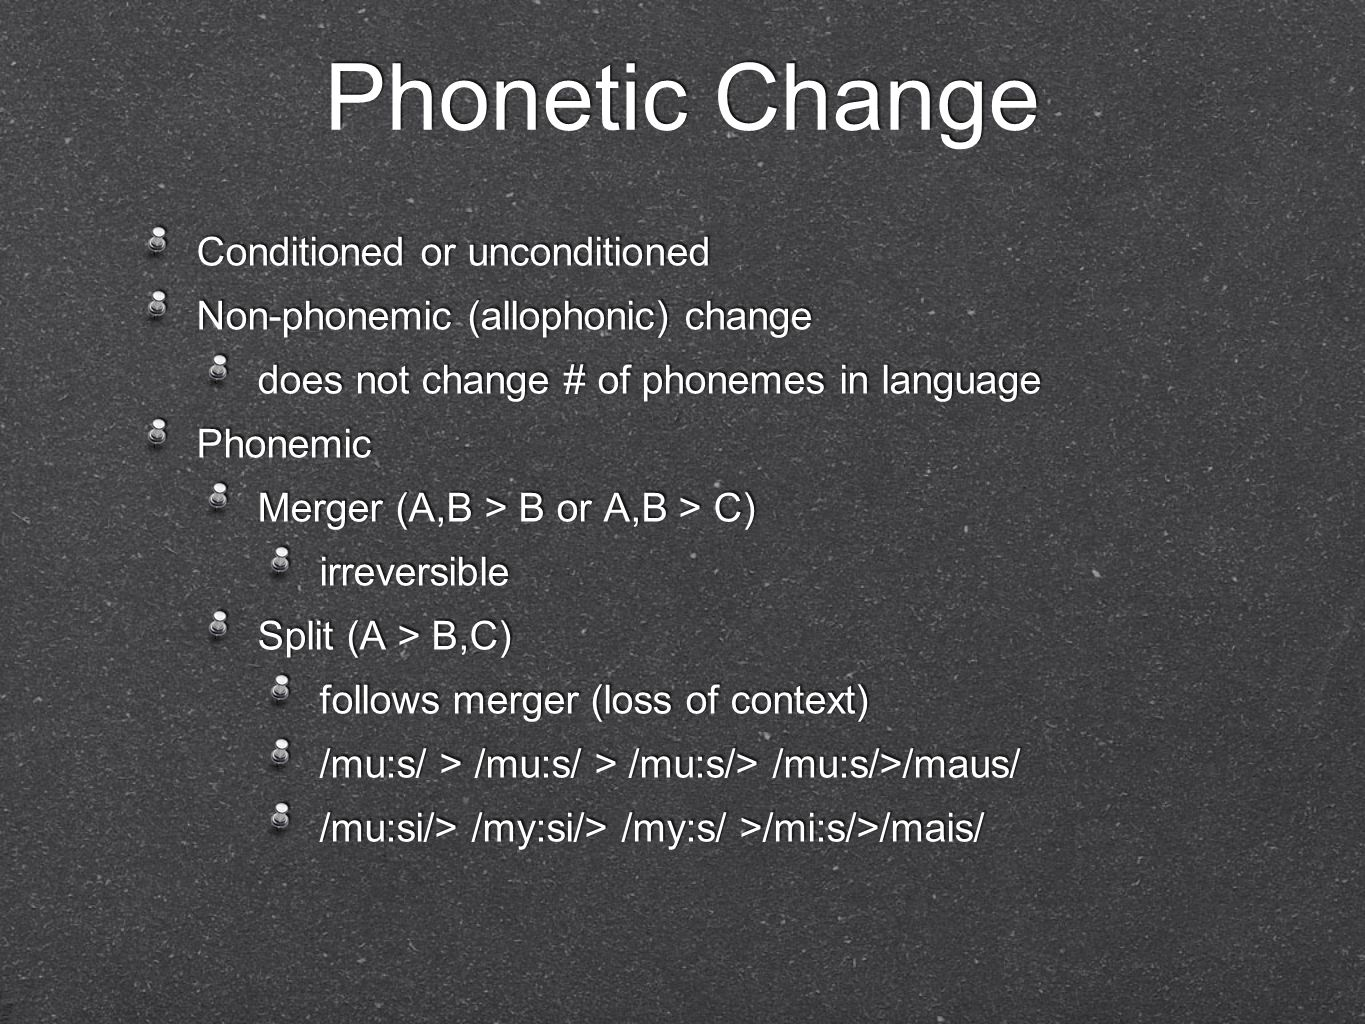 Phonetic Change Conditioned or unconditioned Non-phonemic (allophonic) change does not change # of phonemes in language Phonemic Merger (A,B > B or A,B > C) irreversible Split (A > B,C) follows merger (loss of context) /mu:s/ > /mu:s/ > /mu:s/> /mu:s/>/maus/ /mu:si/> /my:si/> /my:s/ >/mi:s/>/mais/ Conditioned or unconditioned Non-phonemic (allophonic) change does not change # of phonemes in language Phonemic Merger (A,B > B or A,B > C) irreversible Split (A > B,C) follows merger (loss of context) /mu:s/ > /mu:s/ > /mu:s/> /mu:s/>/maus/ /mu:si/> /my:si/> /my:s/ >/mi:s/>/mais/